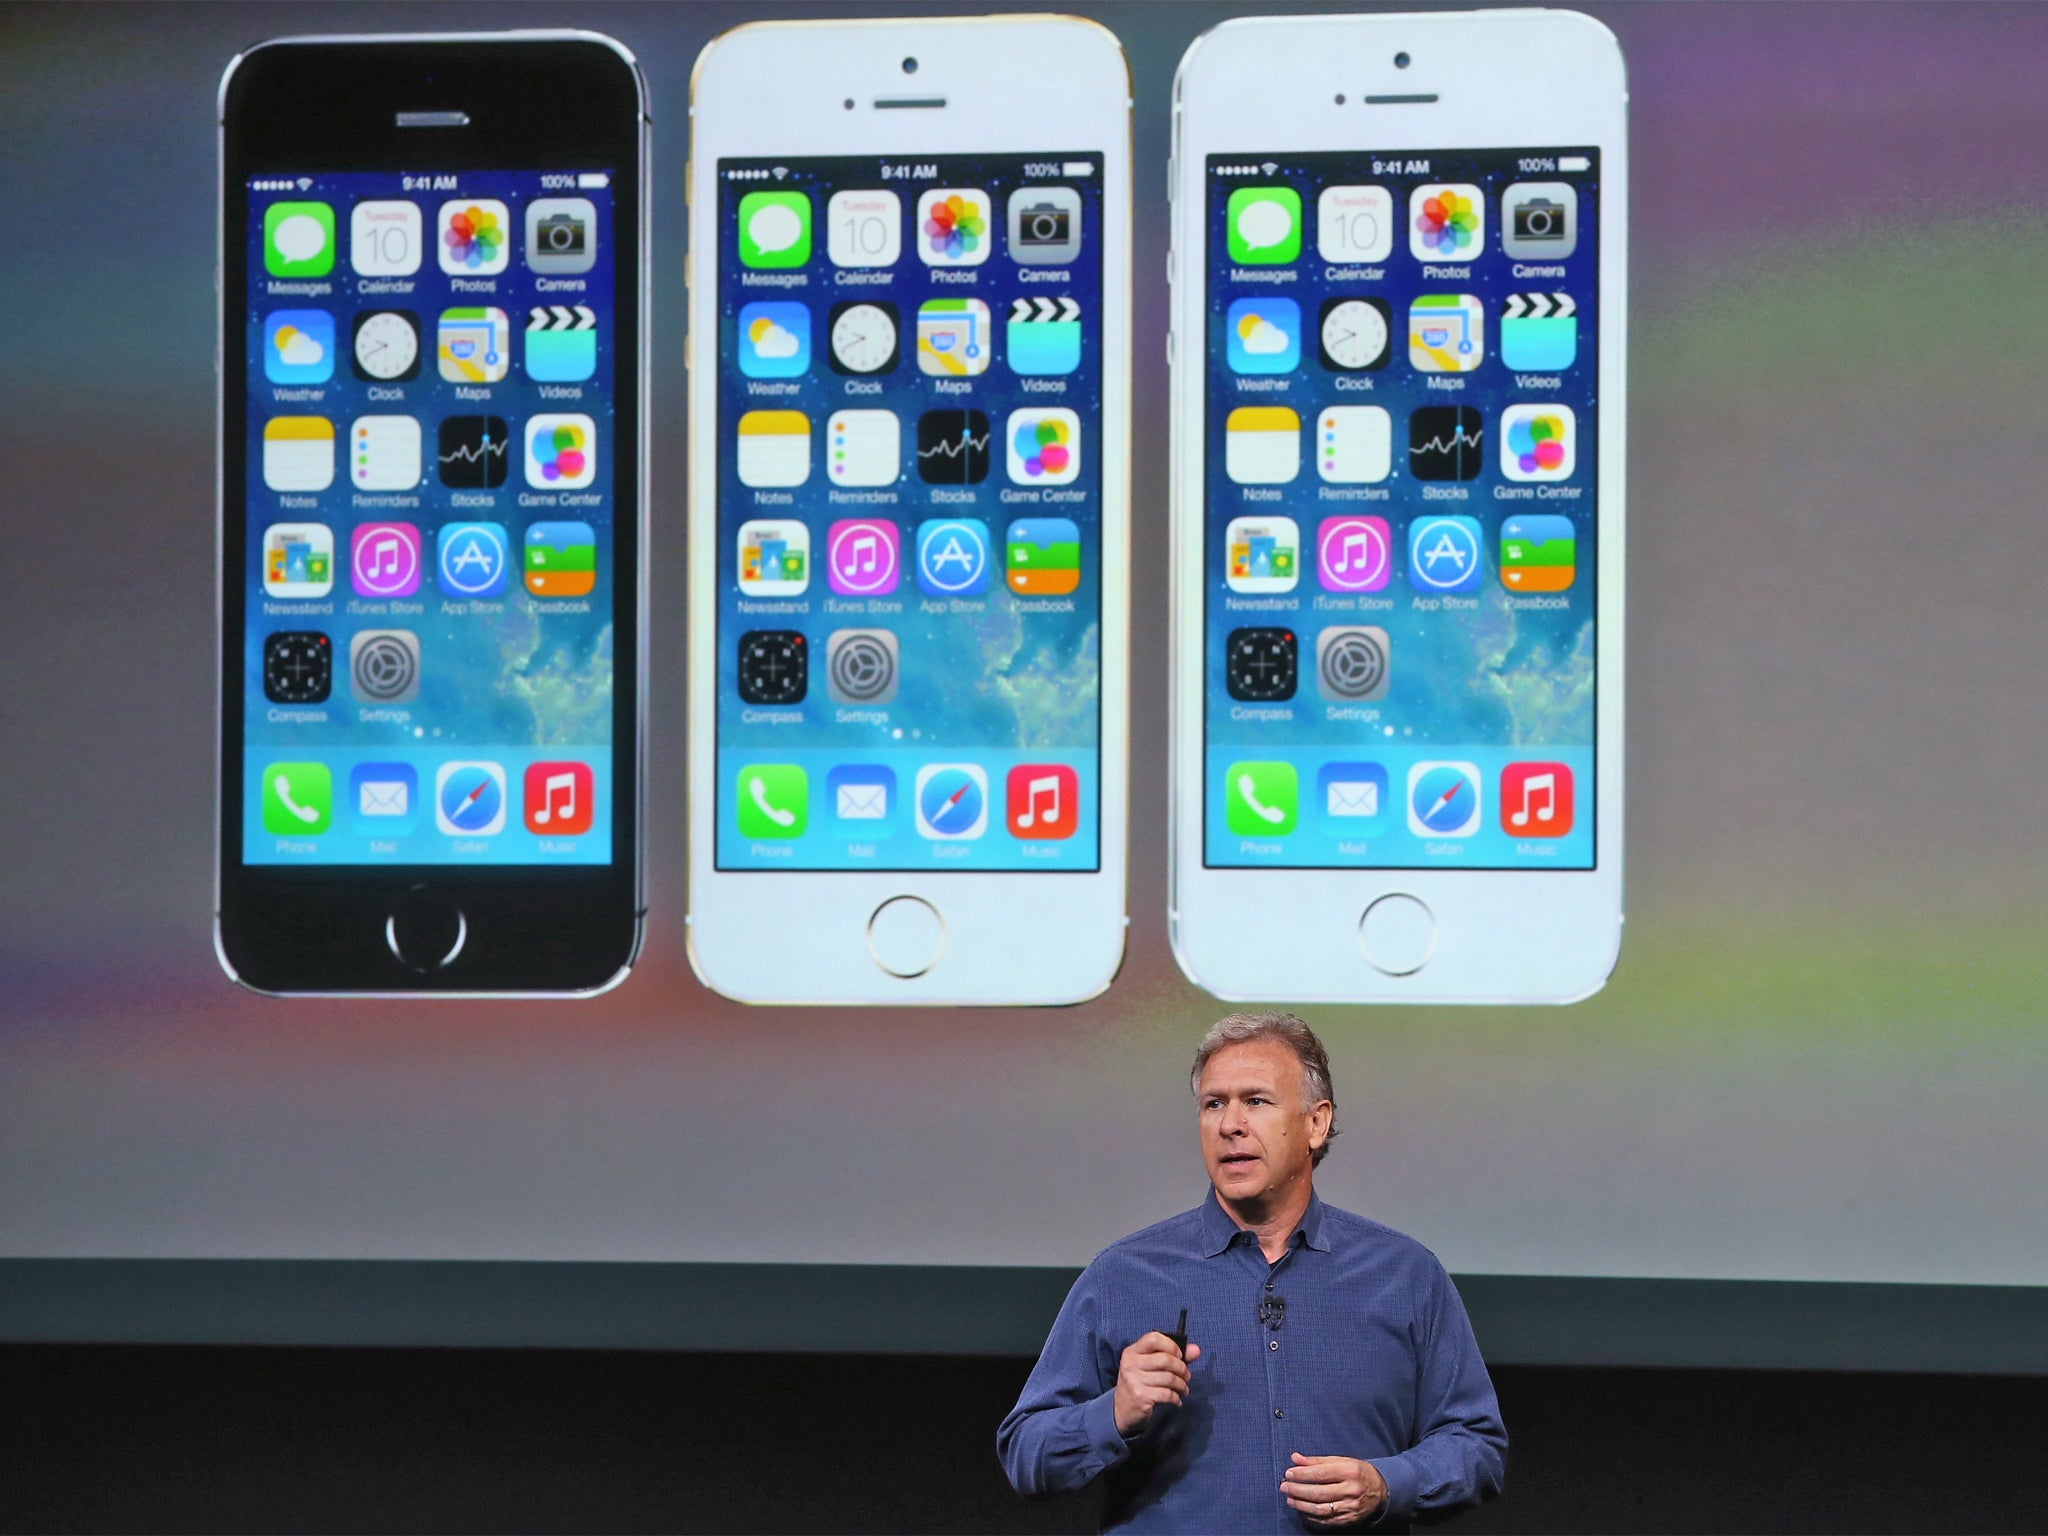 iPhone 5S and iPhone 5C: Reaction and first impressions | The Independentindependent_brand_ident_LOGOUntitled